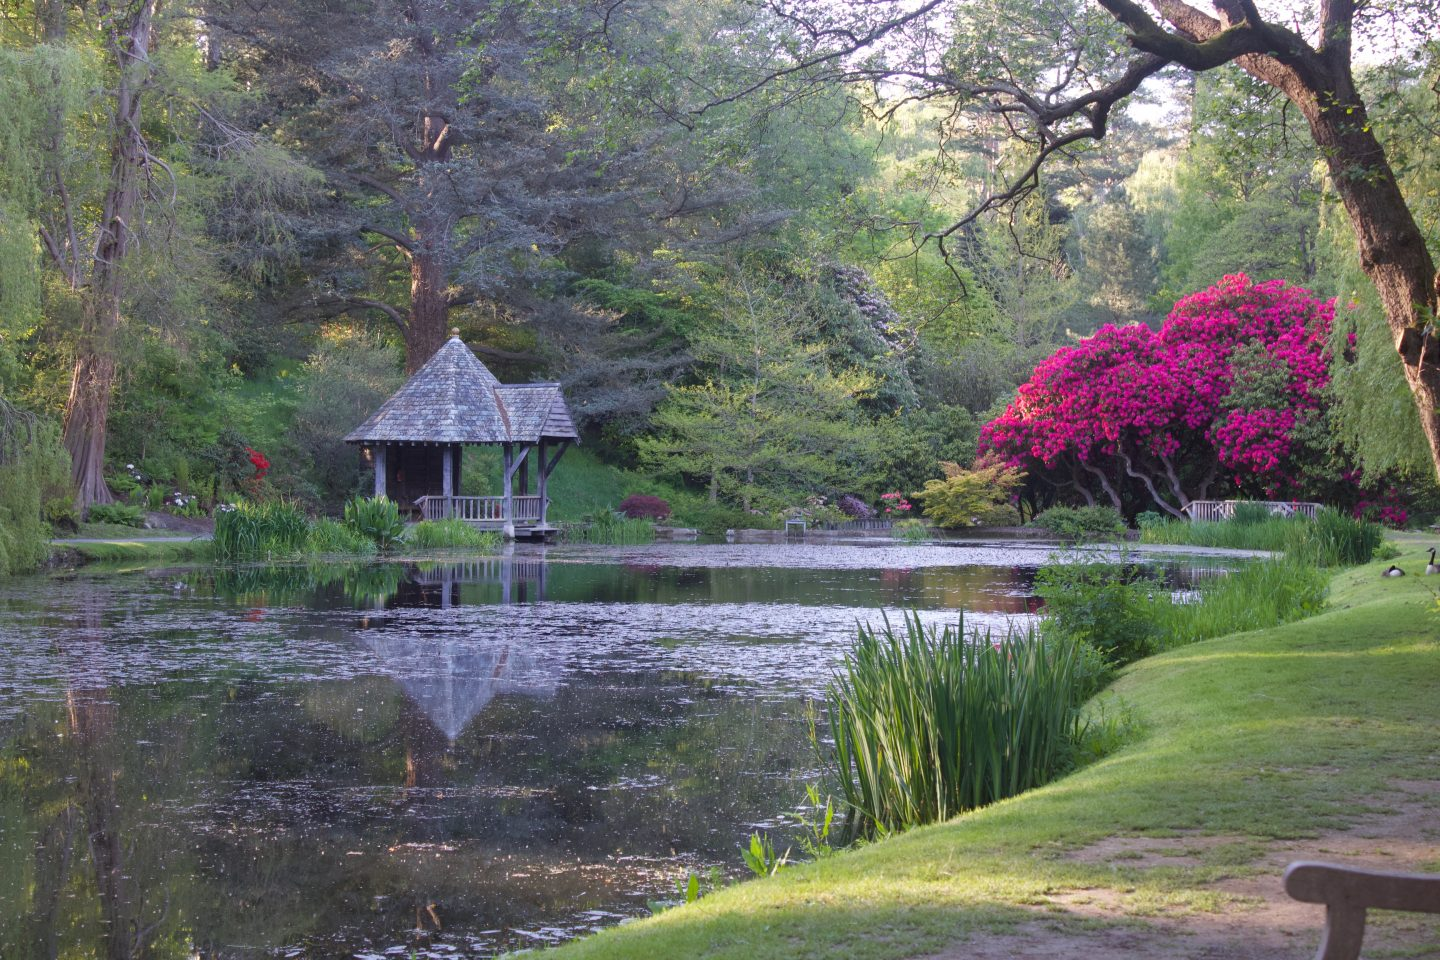 A photo of a small lake with flowers and trees all around it, some of the trees reflect on the water